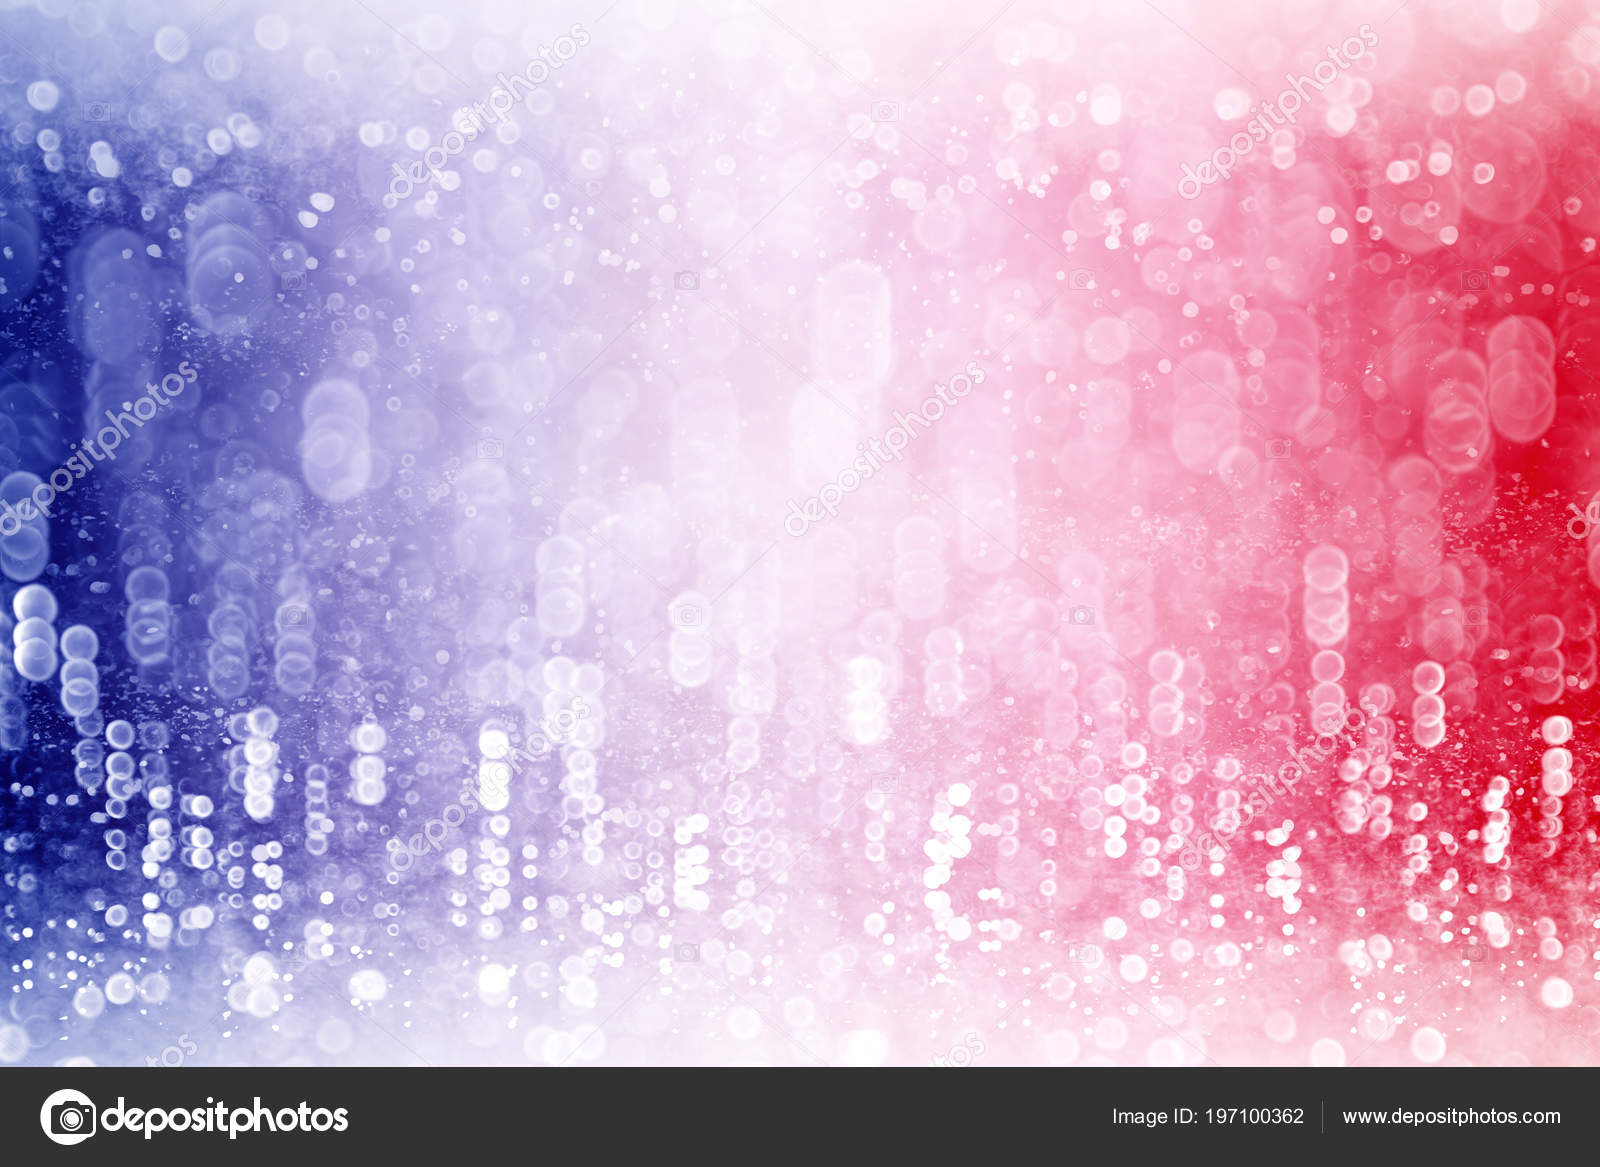 abstract patriotic red white blue glitter sparkle background party